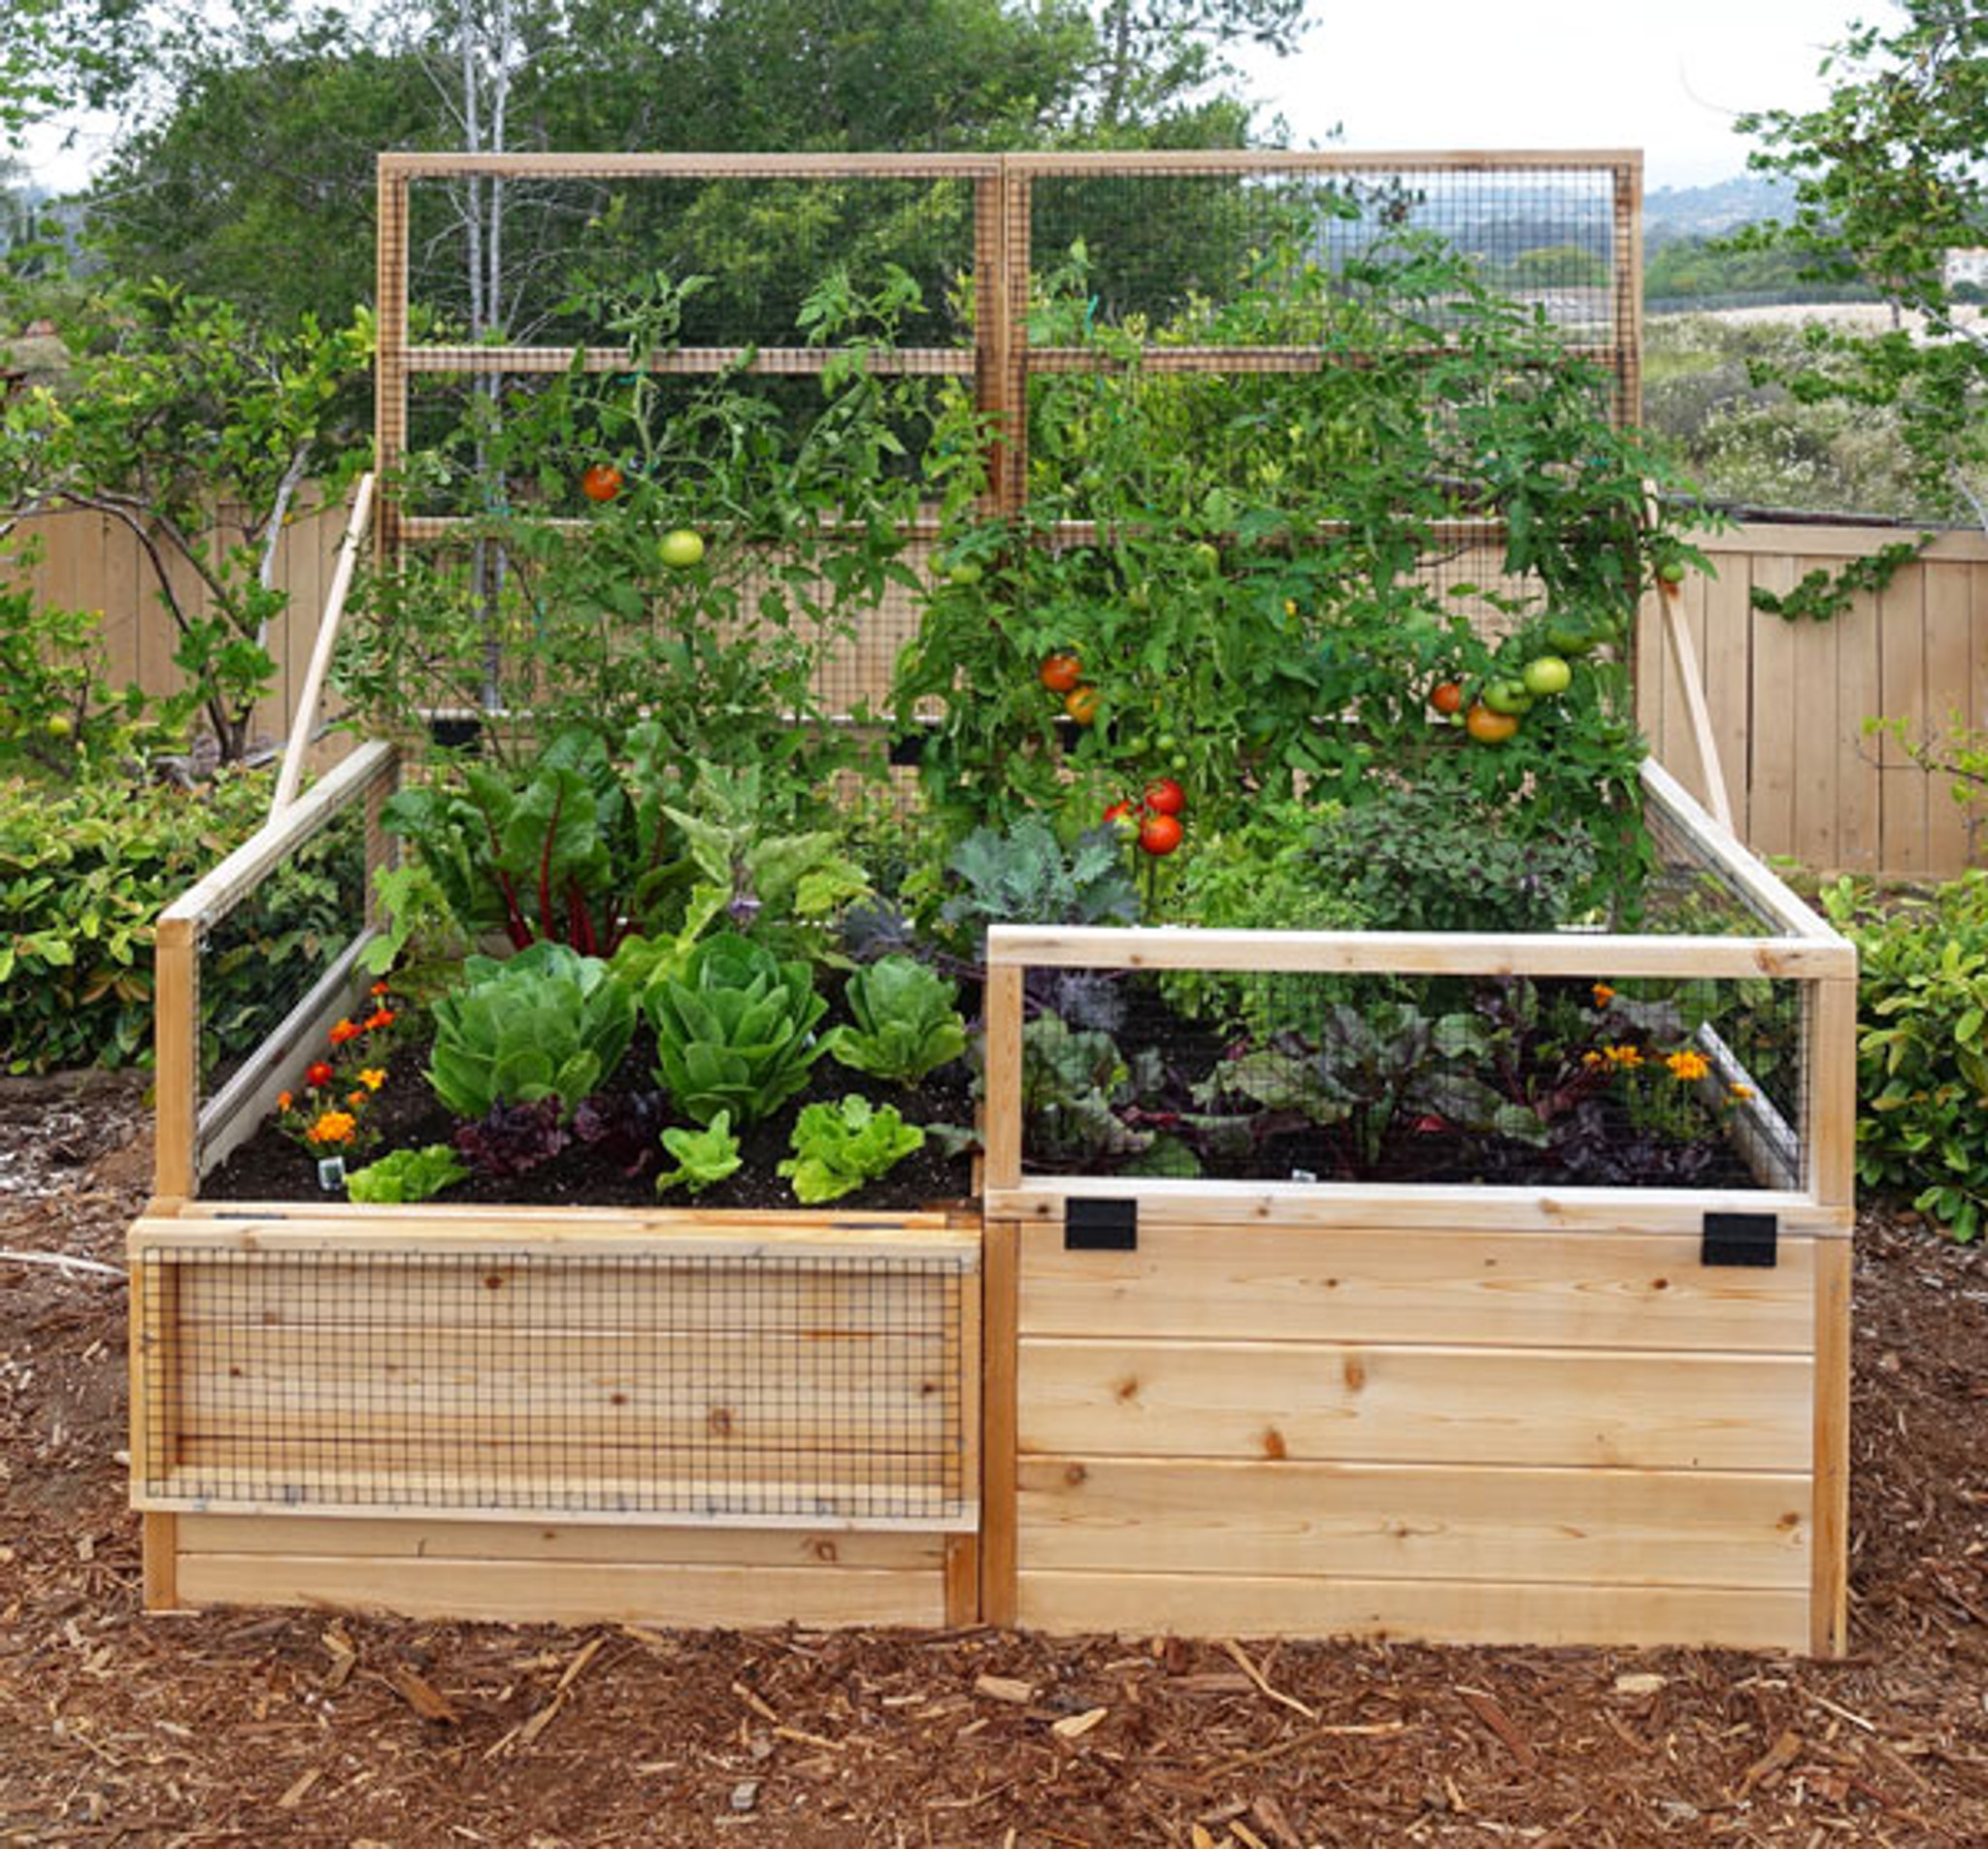 3' x 6' Raised Garden Bed With Hinged Fencing and Trellis Raised Beds Garden Trellis Designs on home trellis designs, pergolas trellis designs, garden plants trellis designs, grapes trellis designs, raised garden beds landscaping, raised garden beds landscape design,